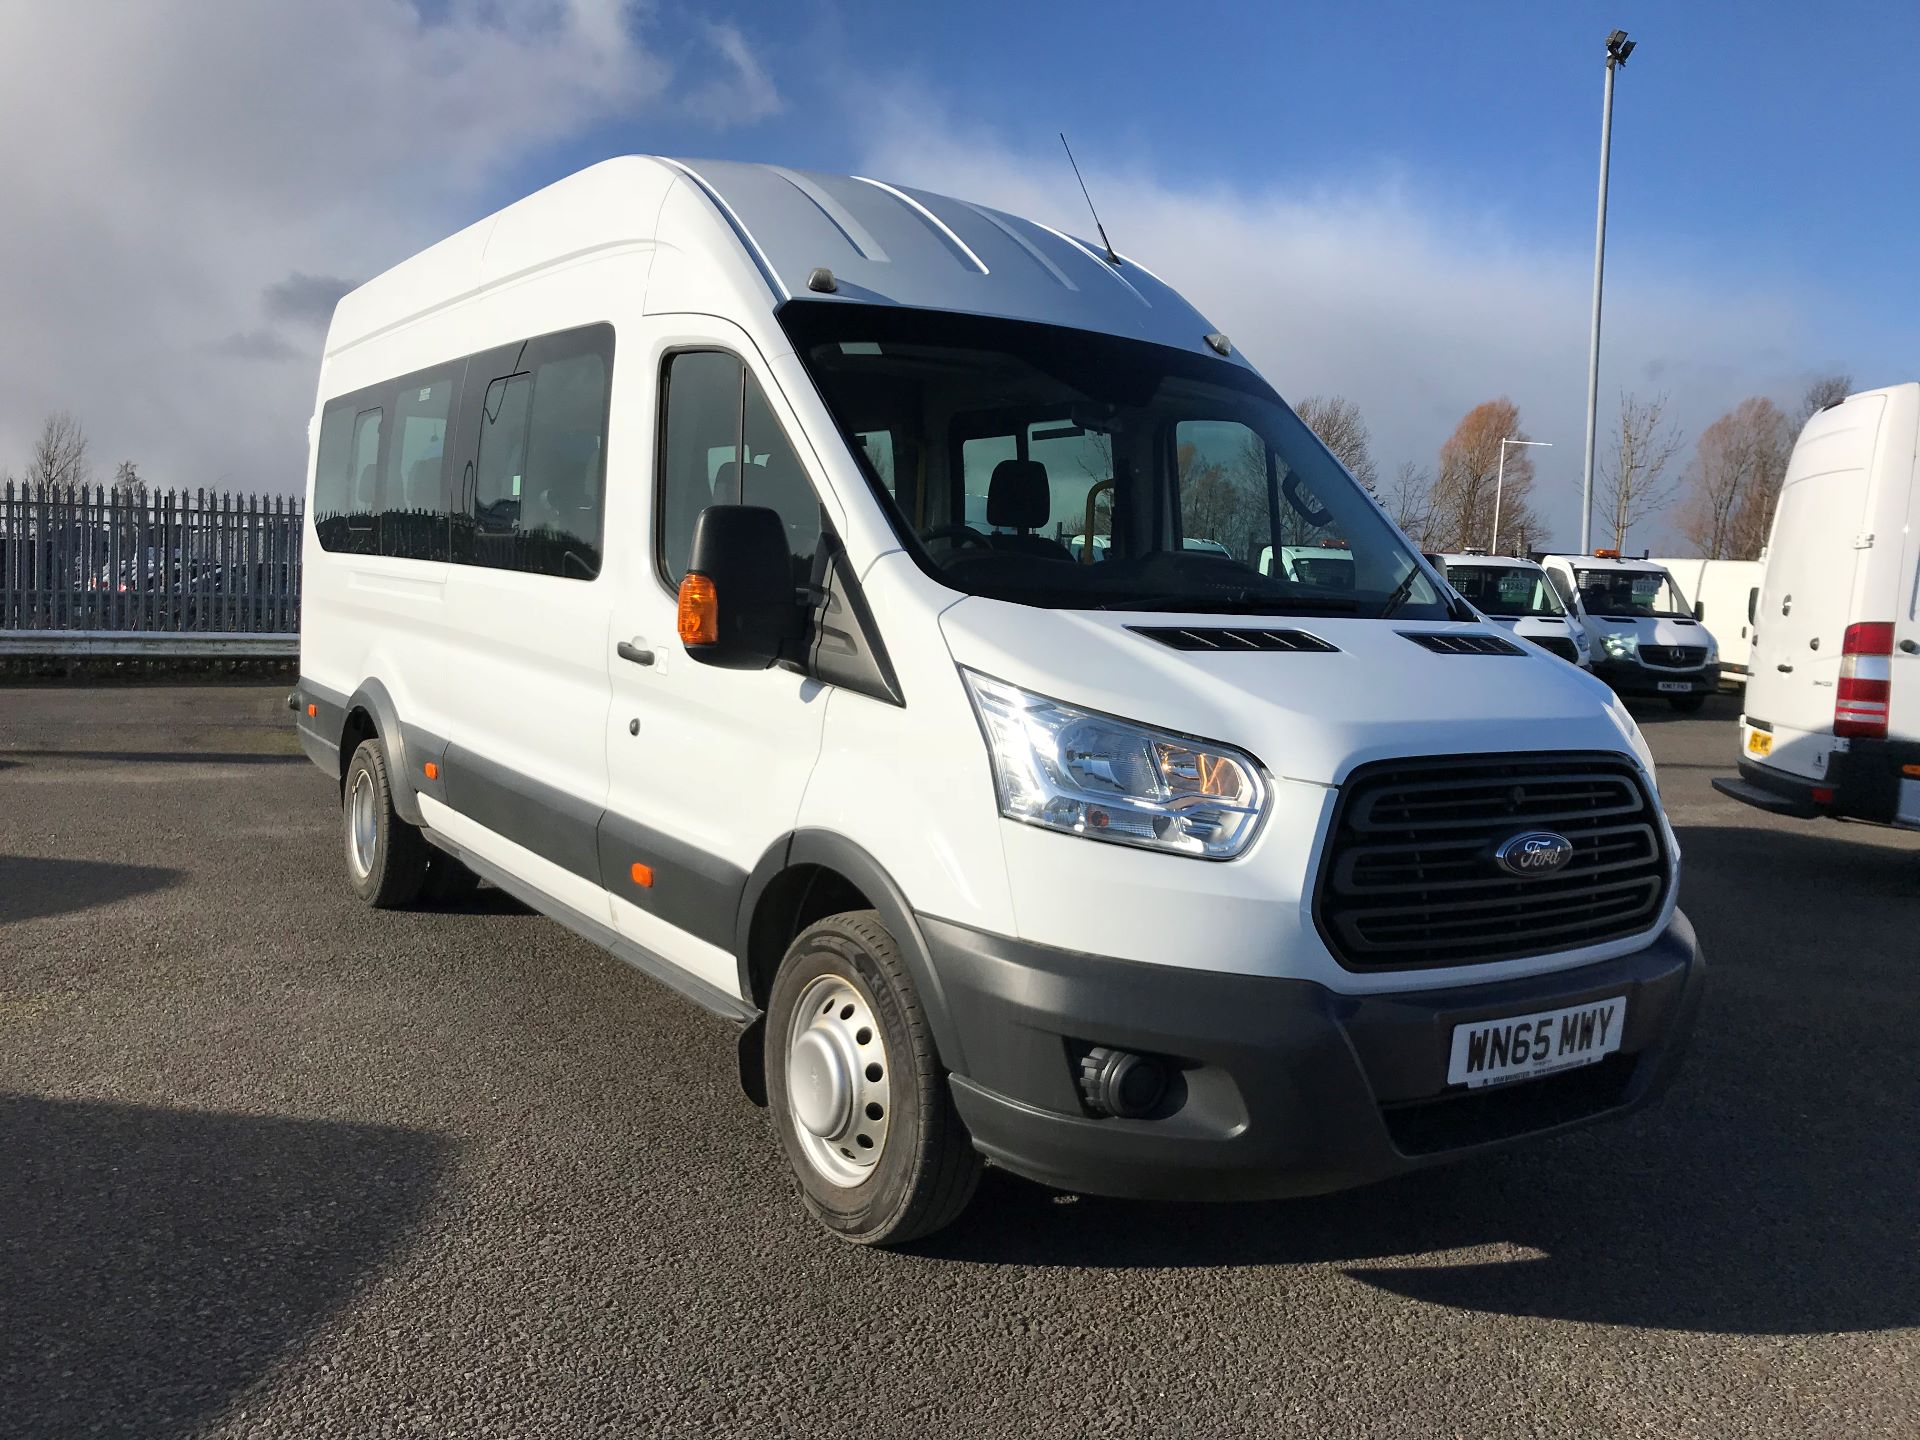 2015 Ford Transit 2.2 Tdci 125Ps H3 17 Seater (WN65MWY)